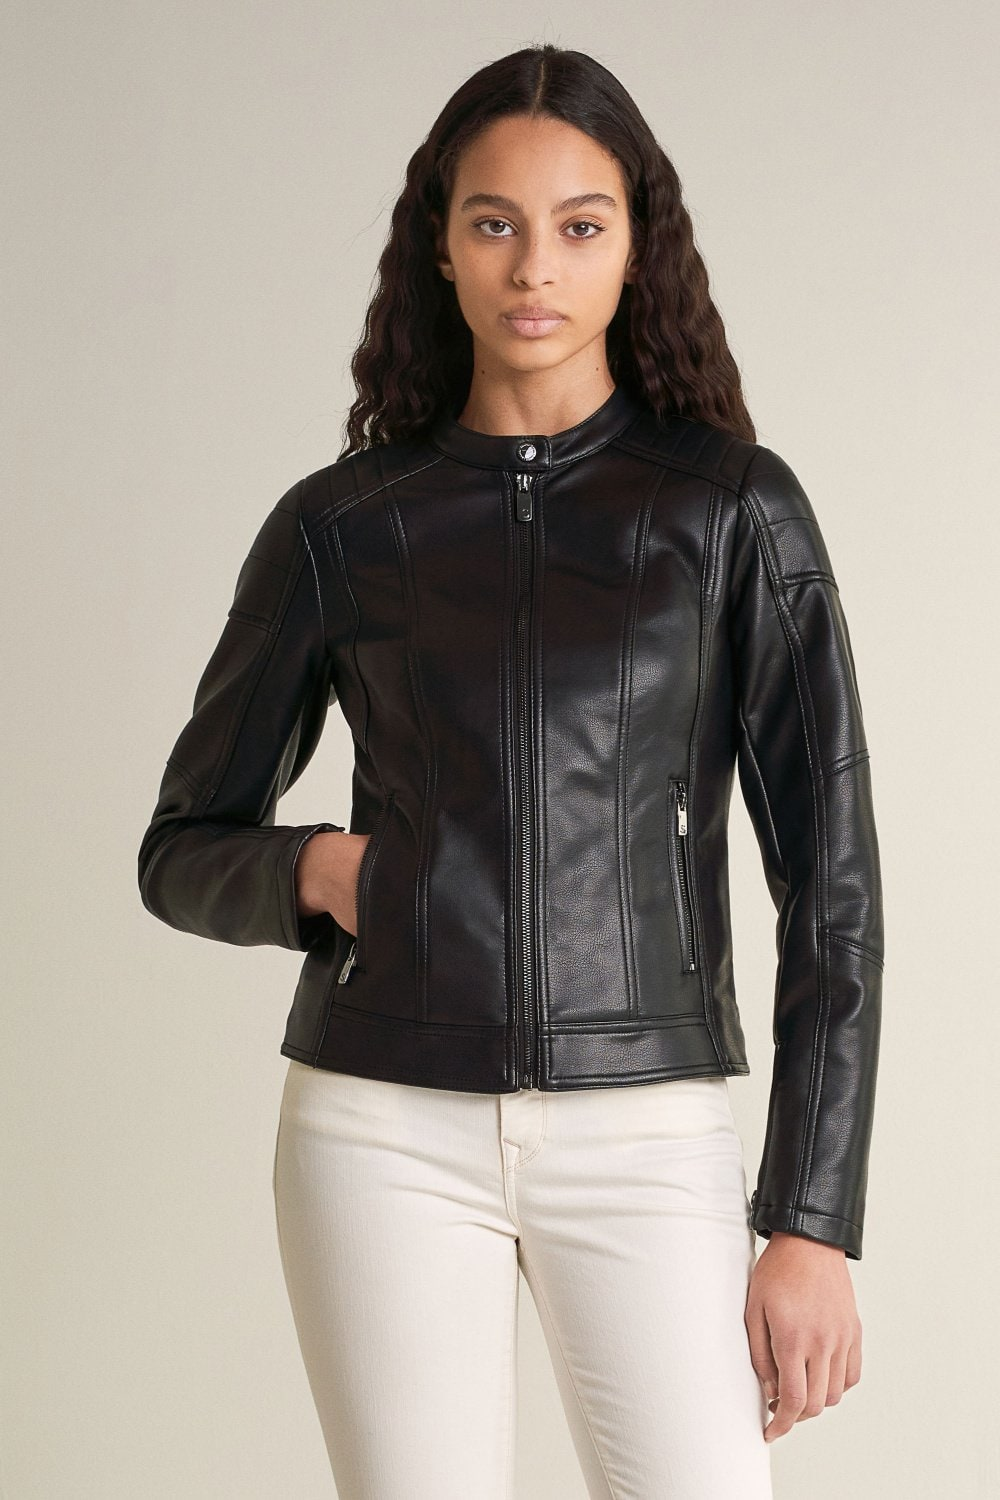 Nappa leather jacket - Salsa